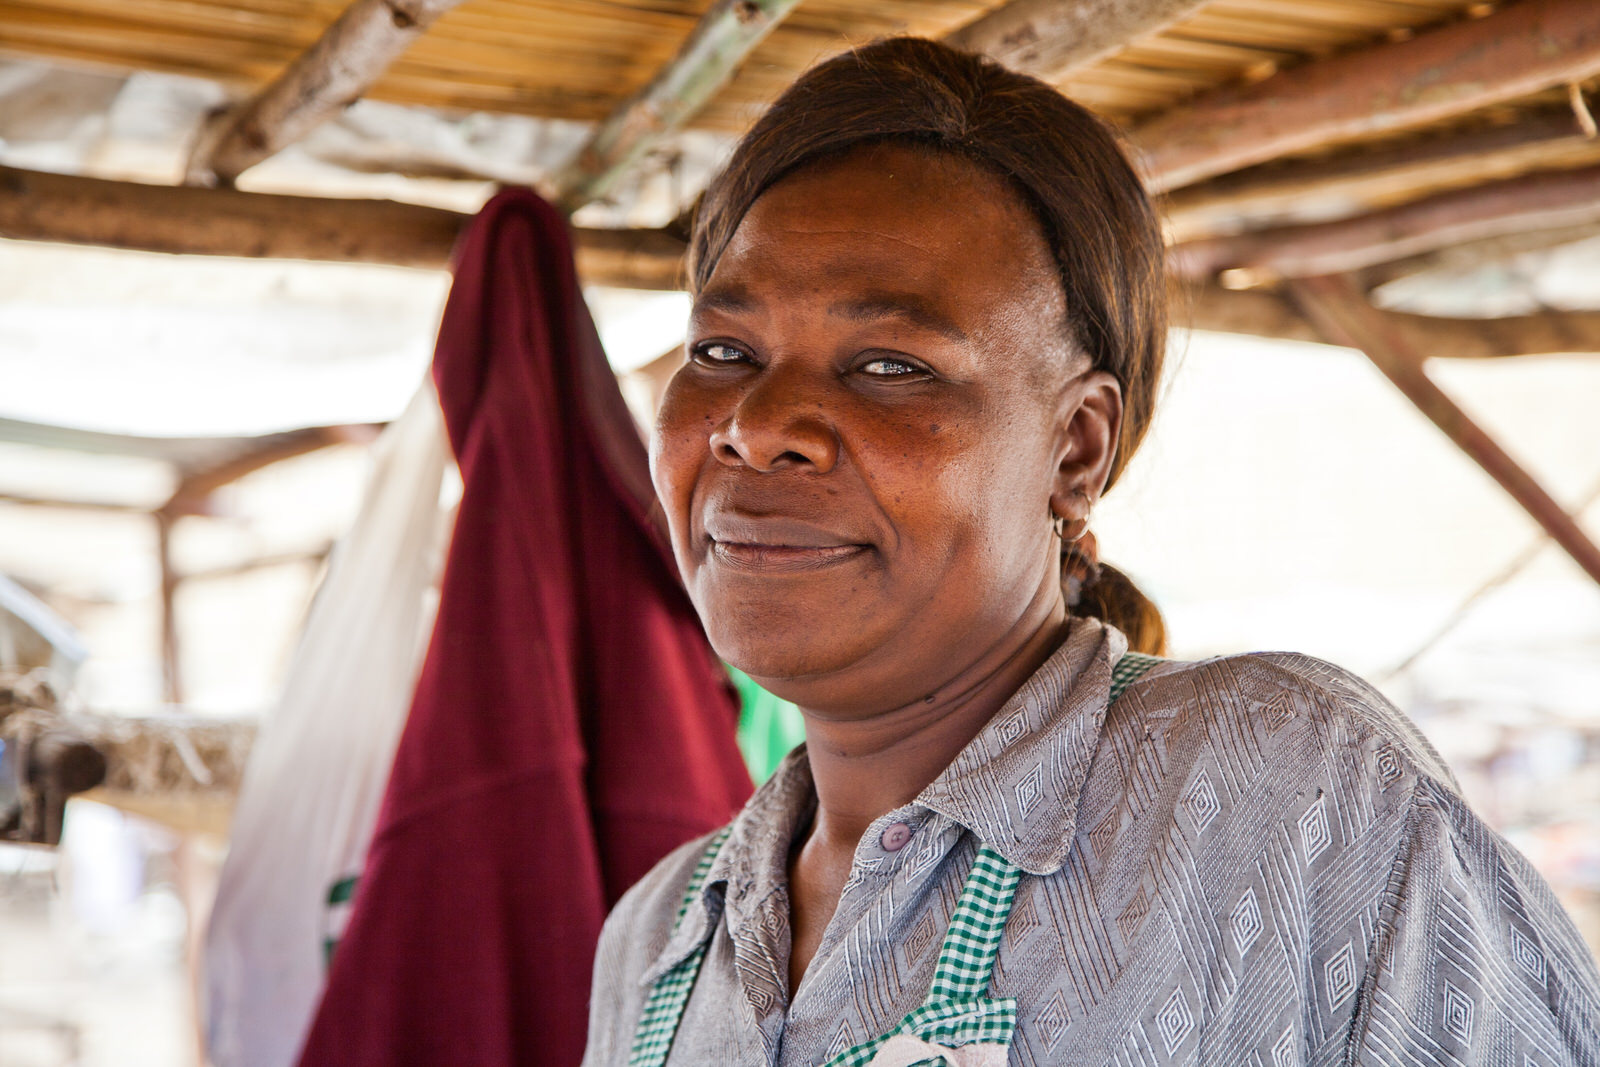 Mildred has successfully rebuilt her trading networks at Kondele, and is now the secretary of her savings and loans group. Her aspirations are to own a shop and to build a home for her and her daughter.